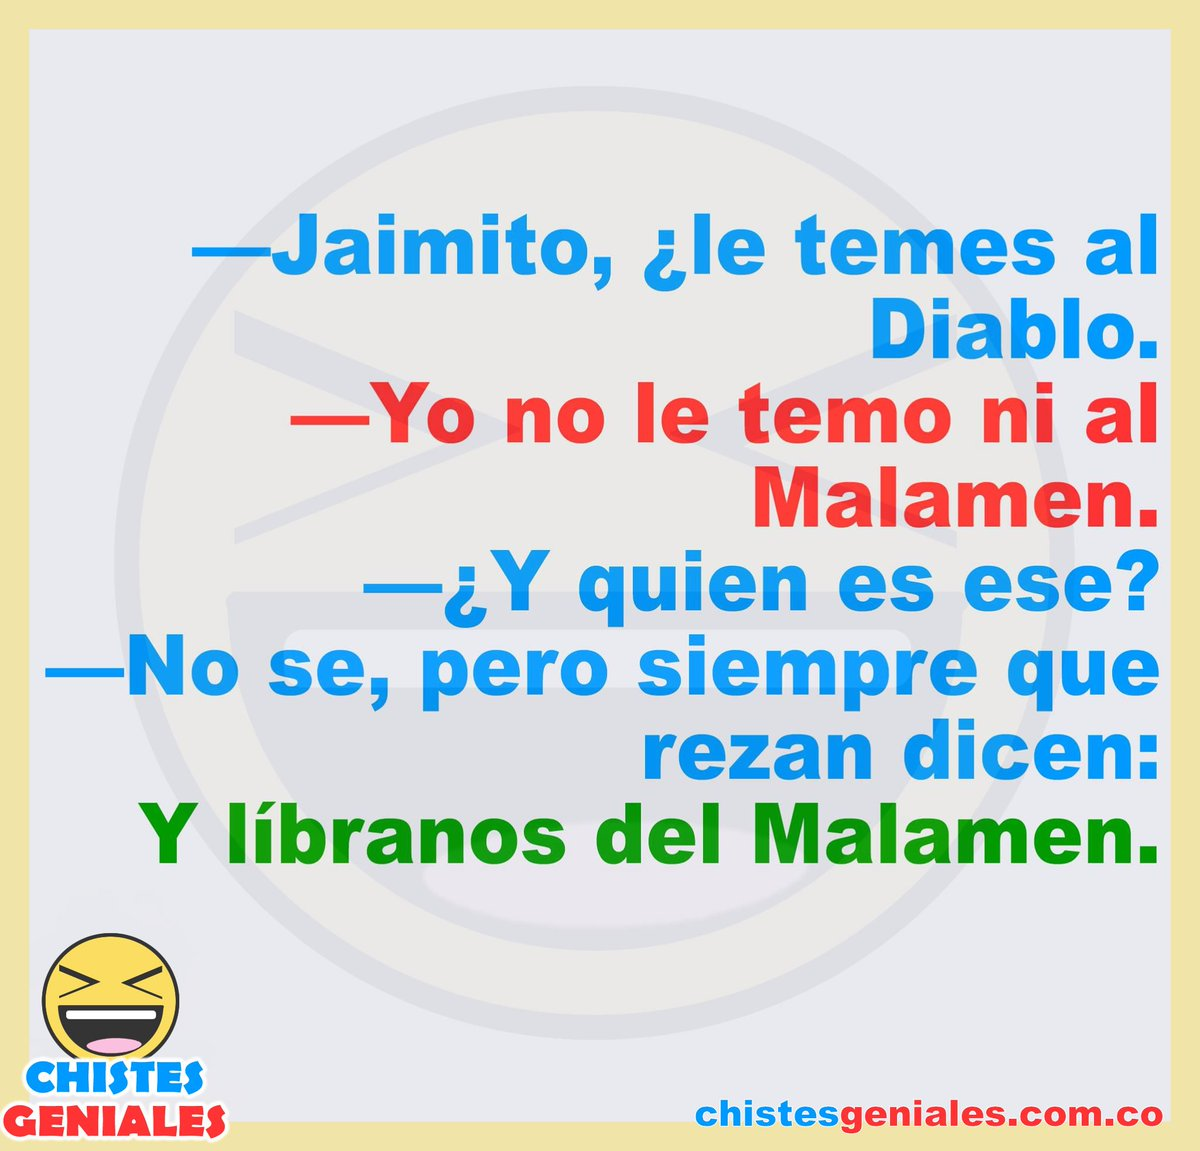 Chistesgeniales Chistes Humor Tweet Added By Chistes Geniales